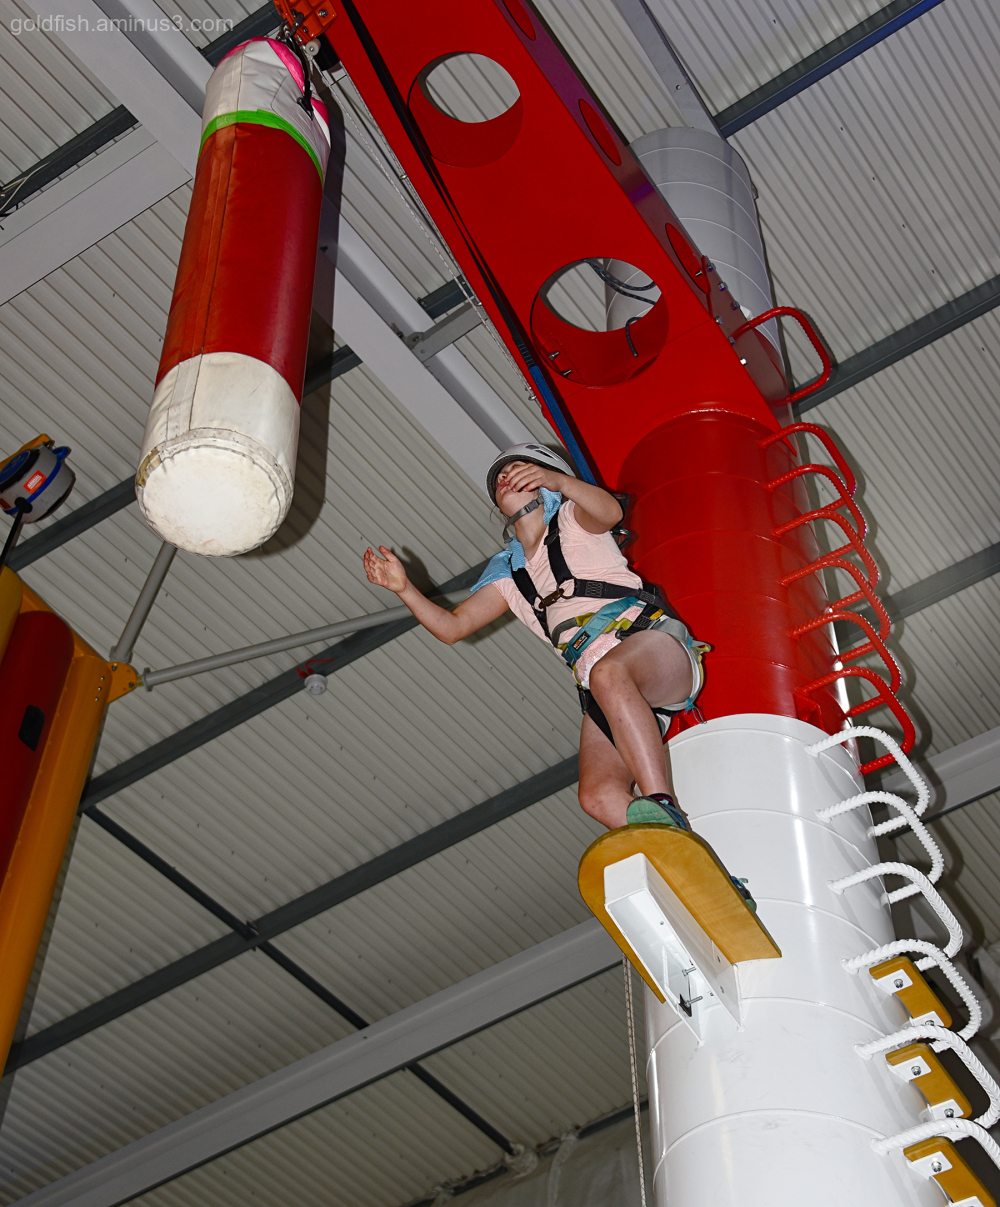 Clip & Climb III (The Leap of Faith)